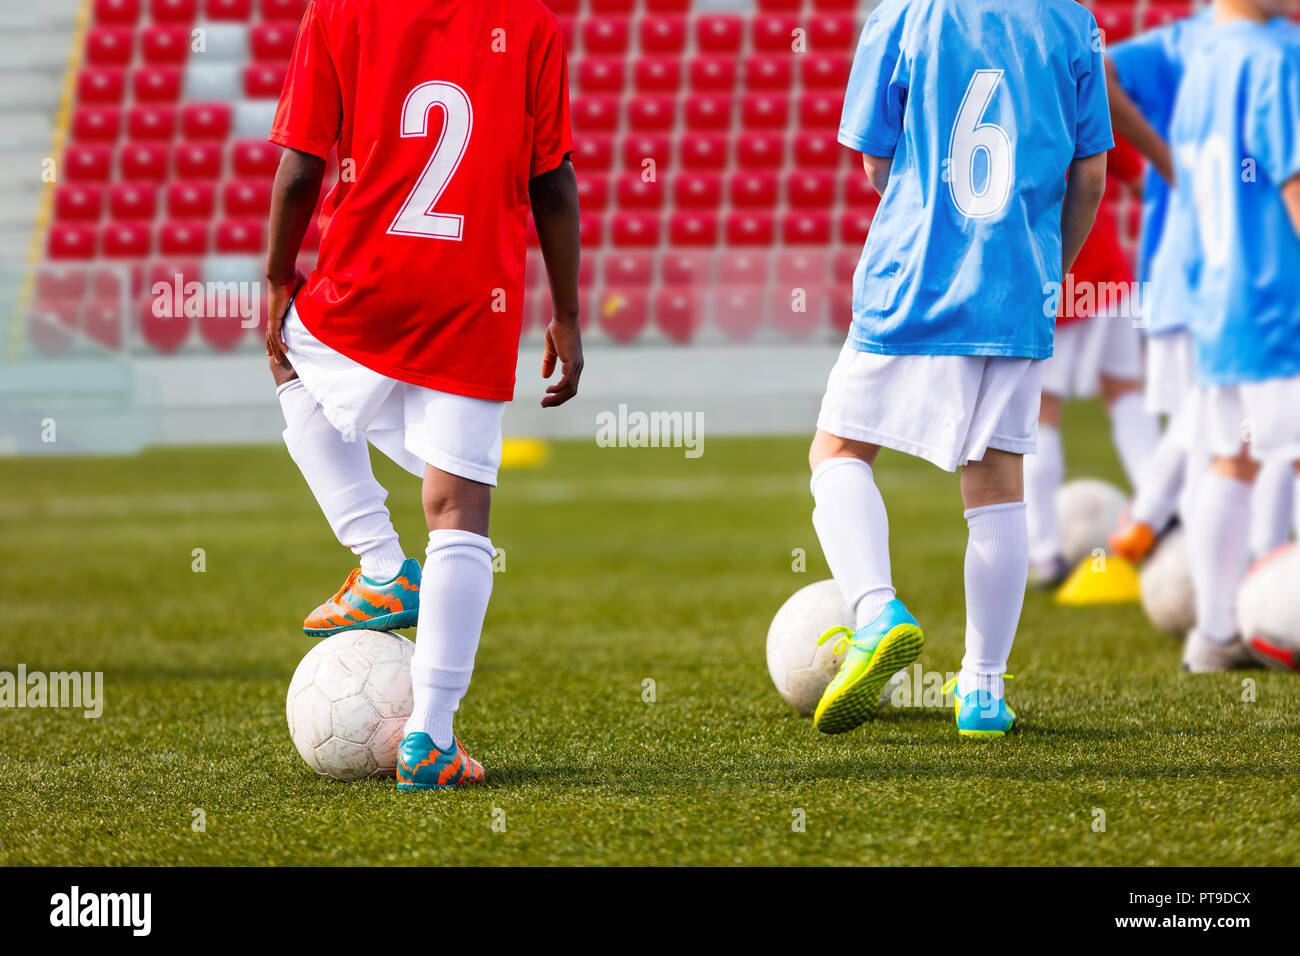 Boys soccer team training. Soccer football players training. Kids playing soccer on a stadium field. A multi-ethnic group of elementary age children p Stock Photo